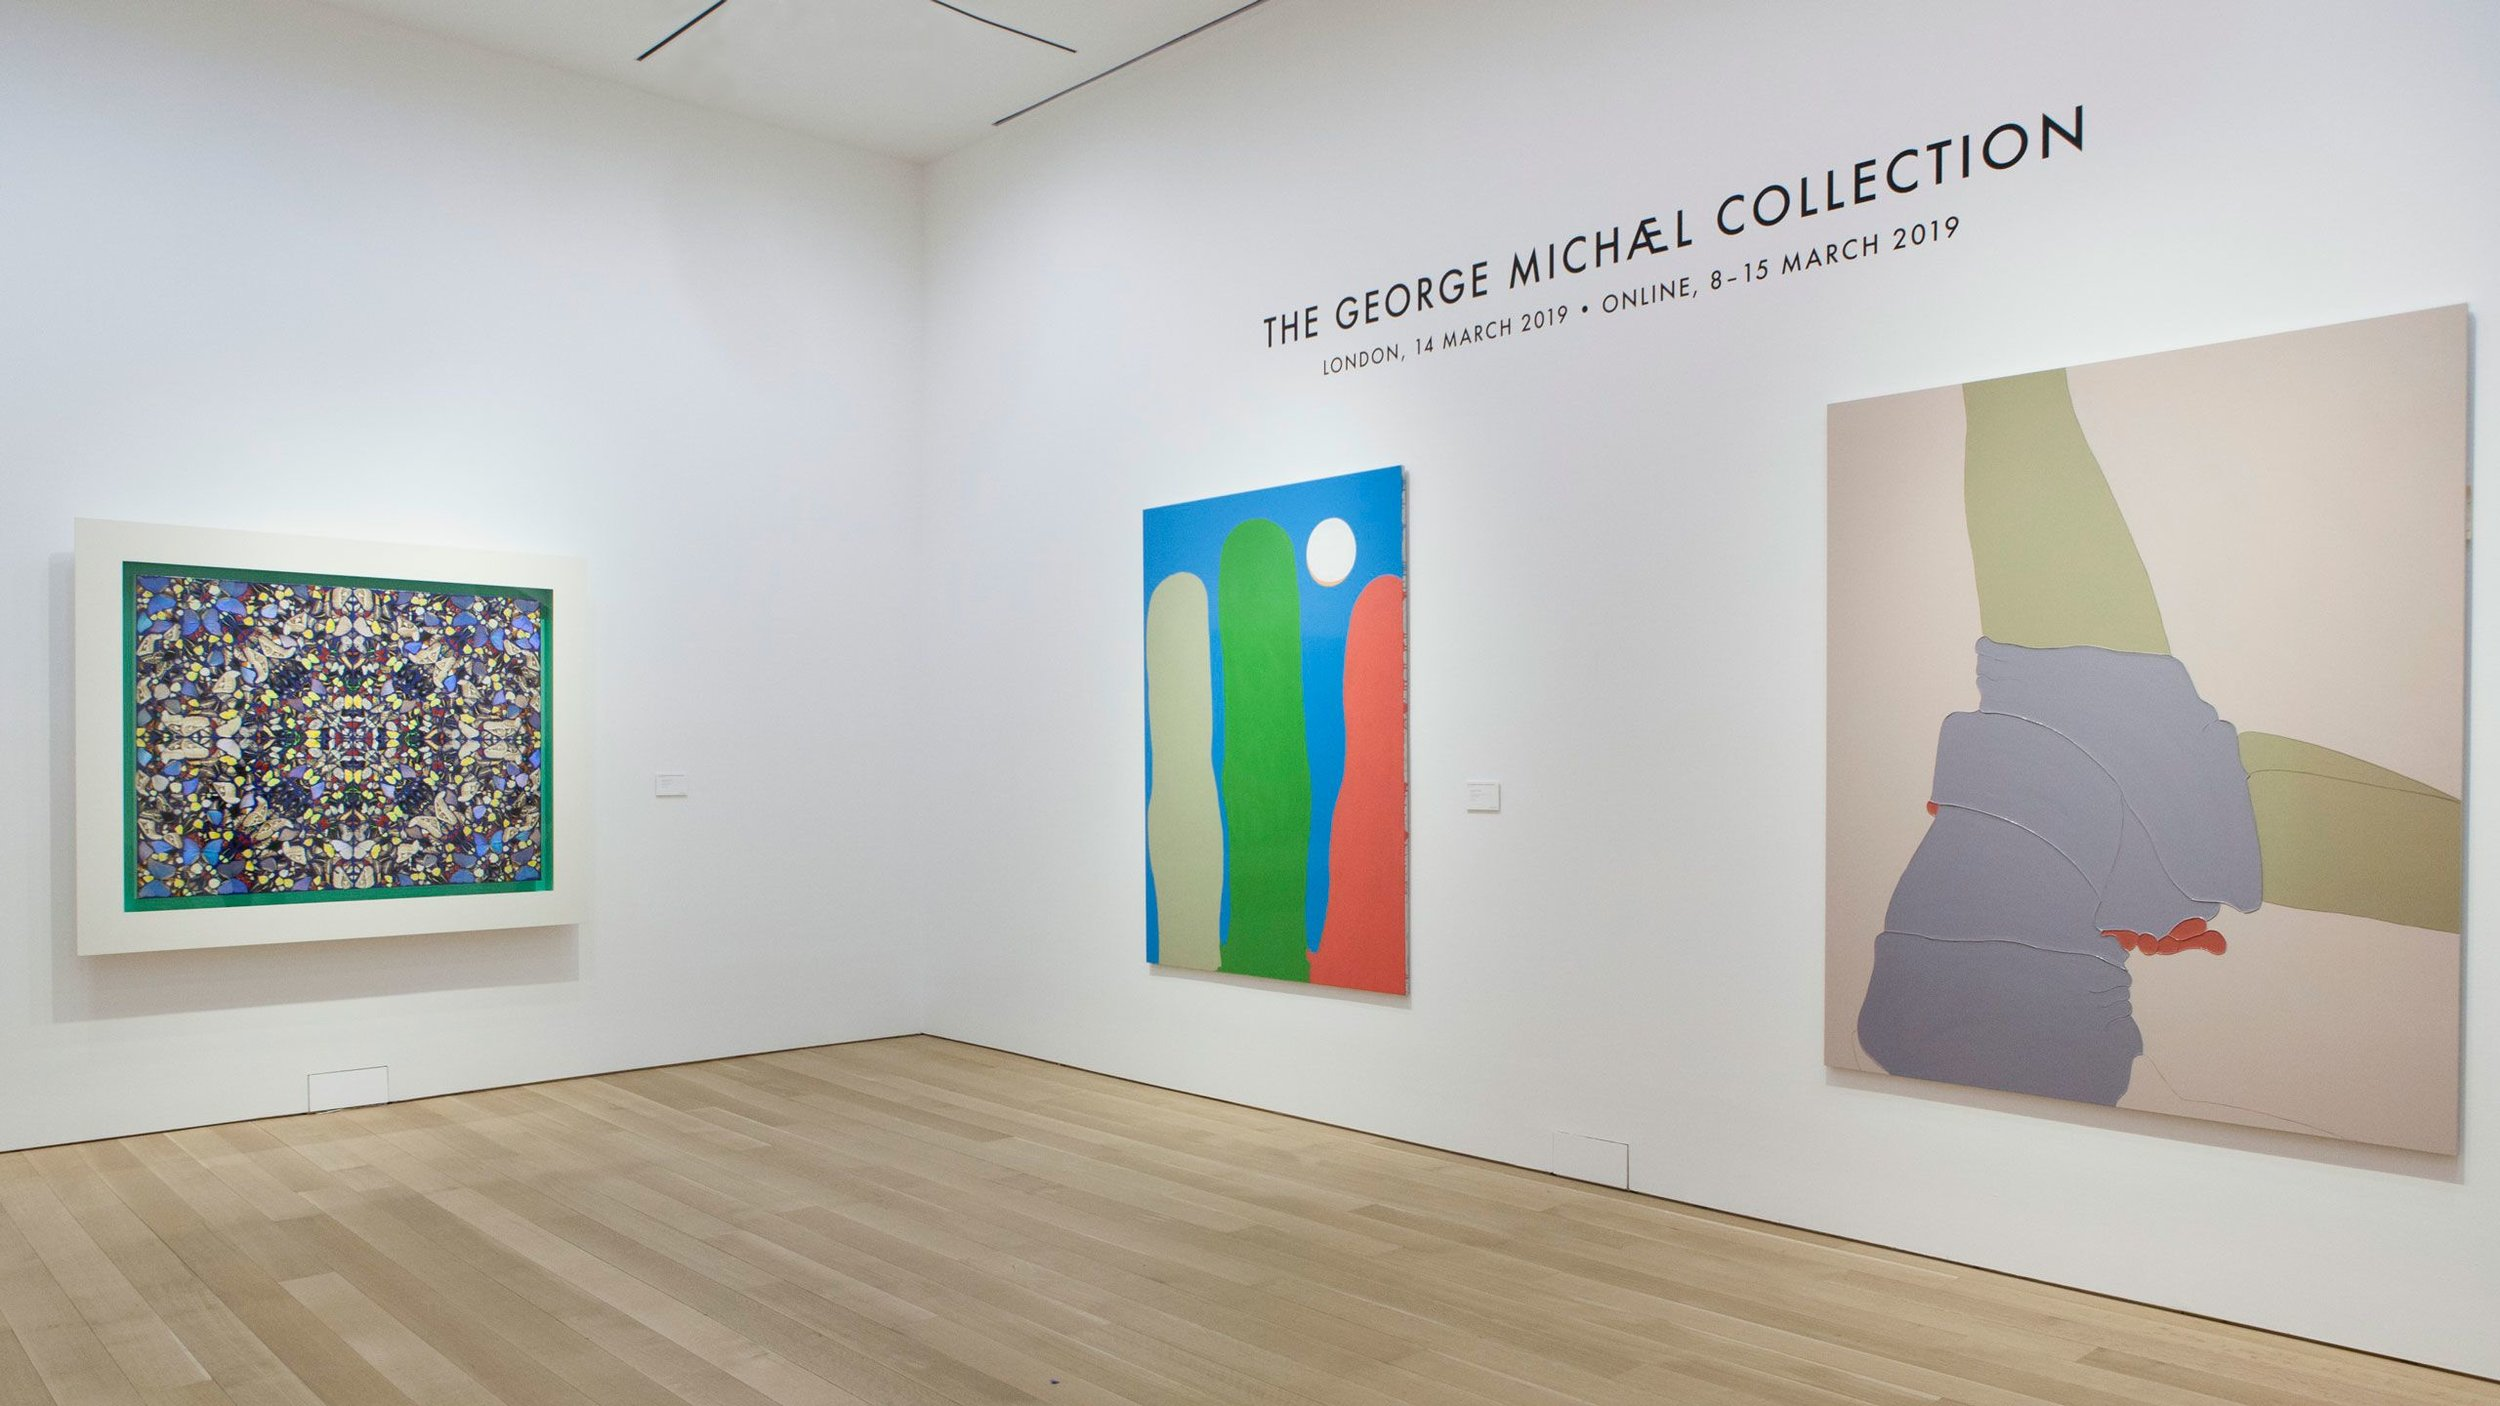 5 WORKS BY ADAM BALL INCLUDED IN THE ICONIC GEORGE MICHAEL COLLECTION AUCTION AT CHRISTIES'S. THE COLLECTION REPRESENTS A UNIQUE DIALOGUE BETWEEN GEORGE MICHAEL AND HIS BRITISH CONTEMPORARIES IN THE VISUAL ARTS.   March 2019